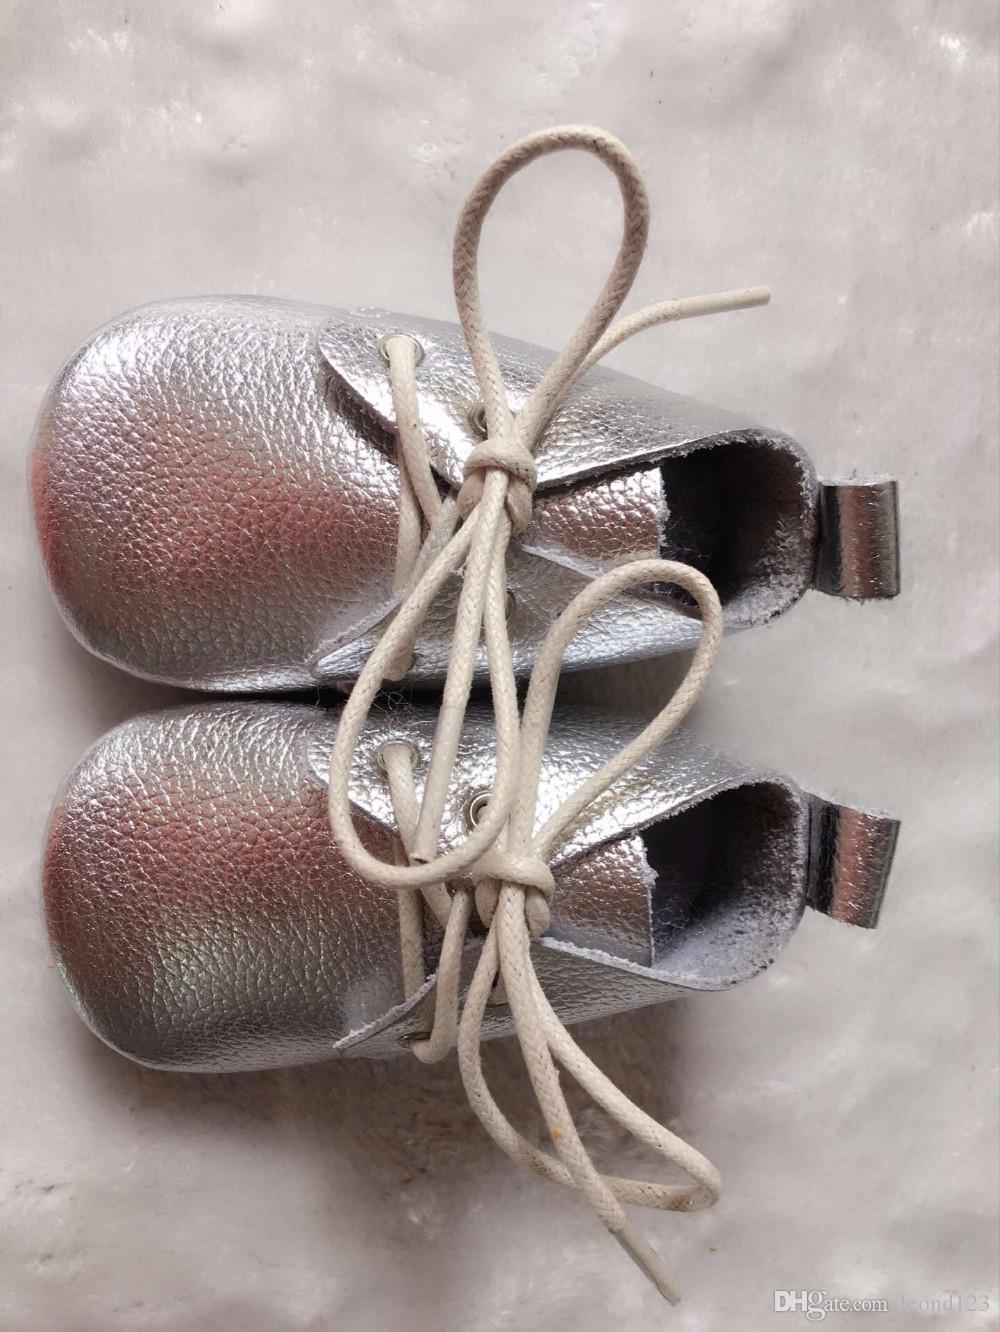 Hongteya solid Genuine Leather Classic Newborn Baby moccasins Prewalkers Lace-up Sneakers first walker girls boys shoes